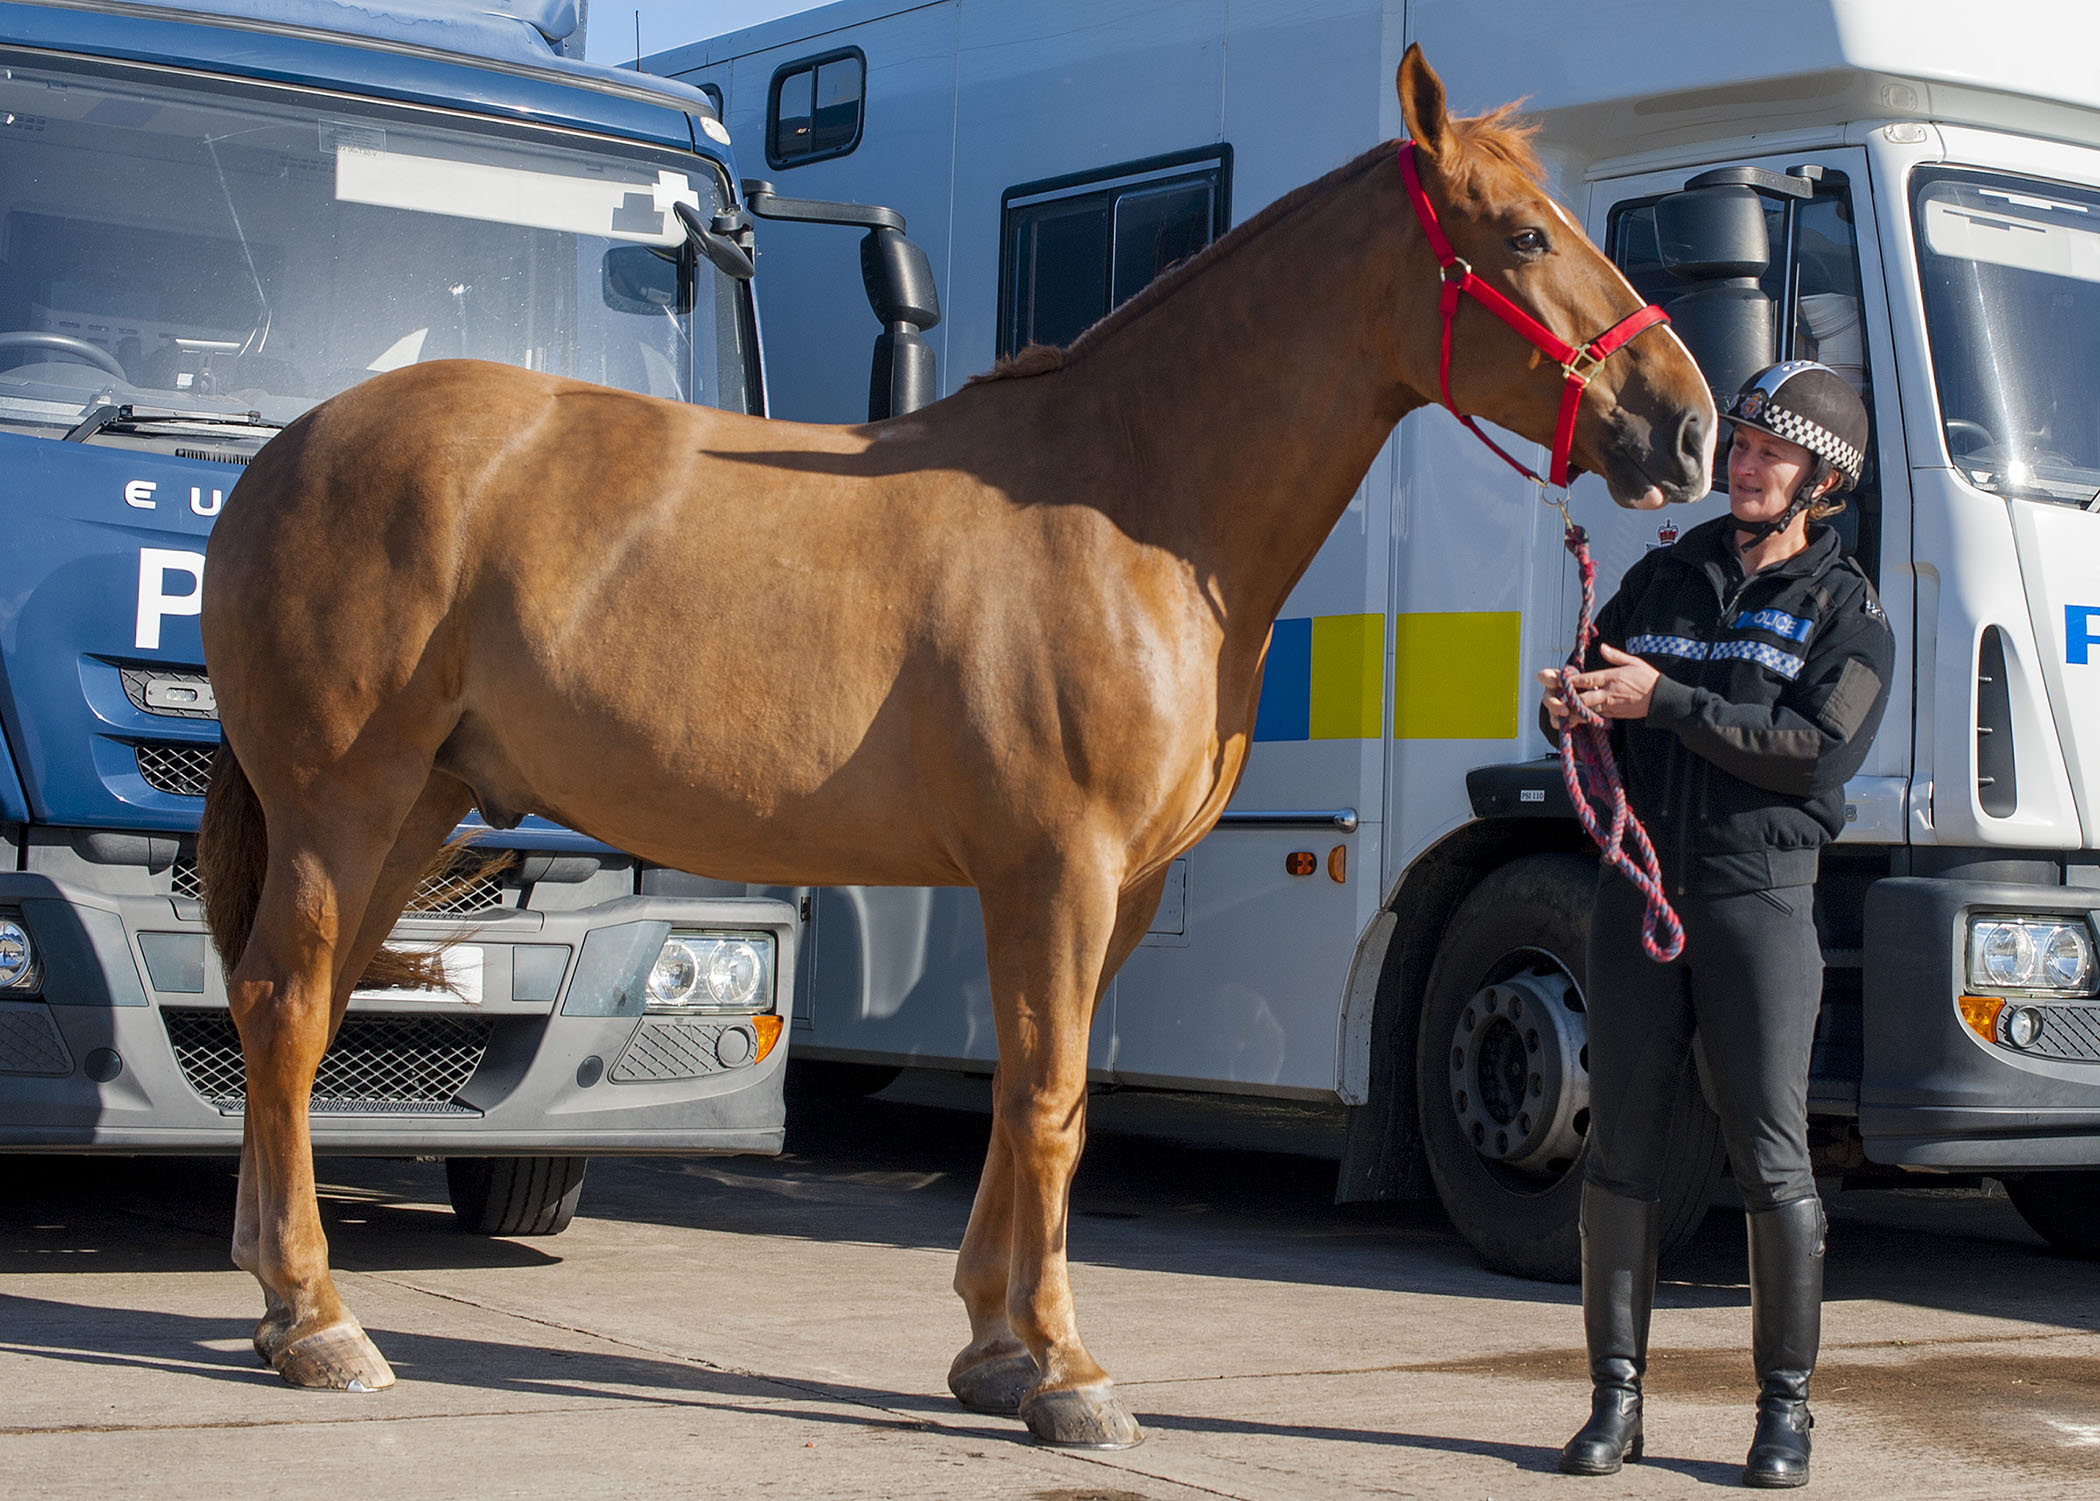 Police horse Pablo